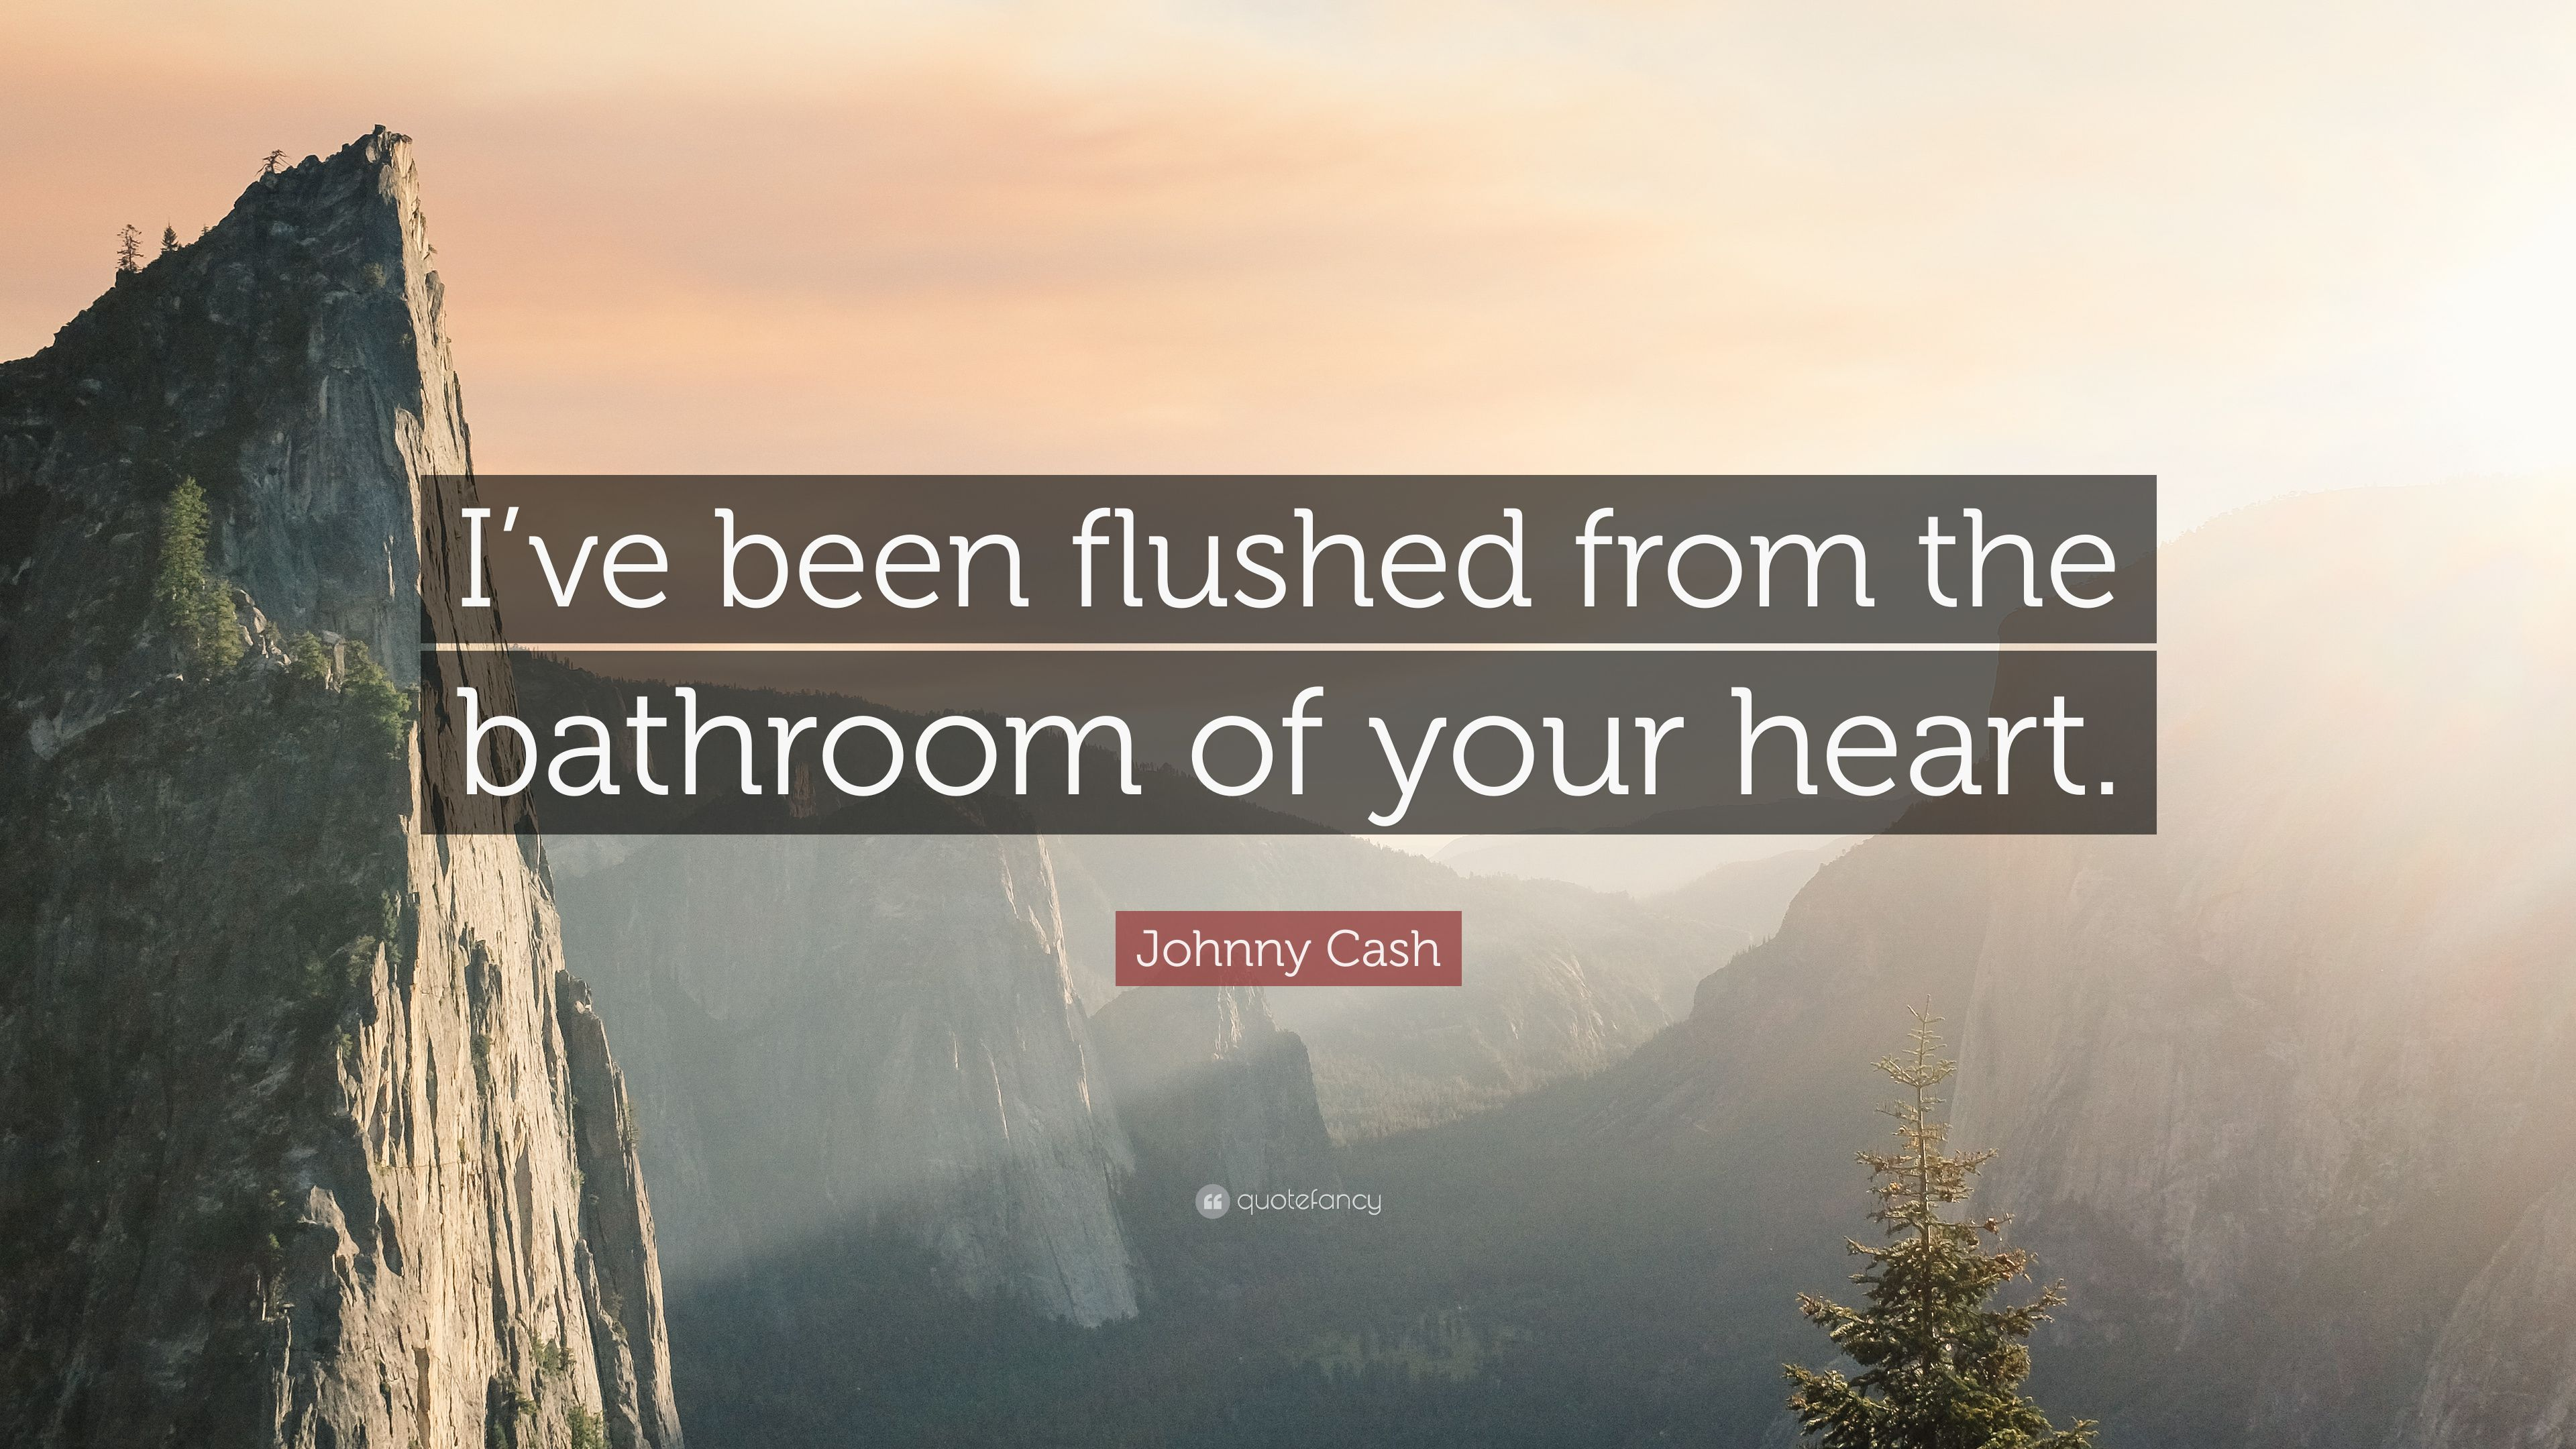 Flushed From The Bathroom Of Your Heart